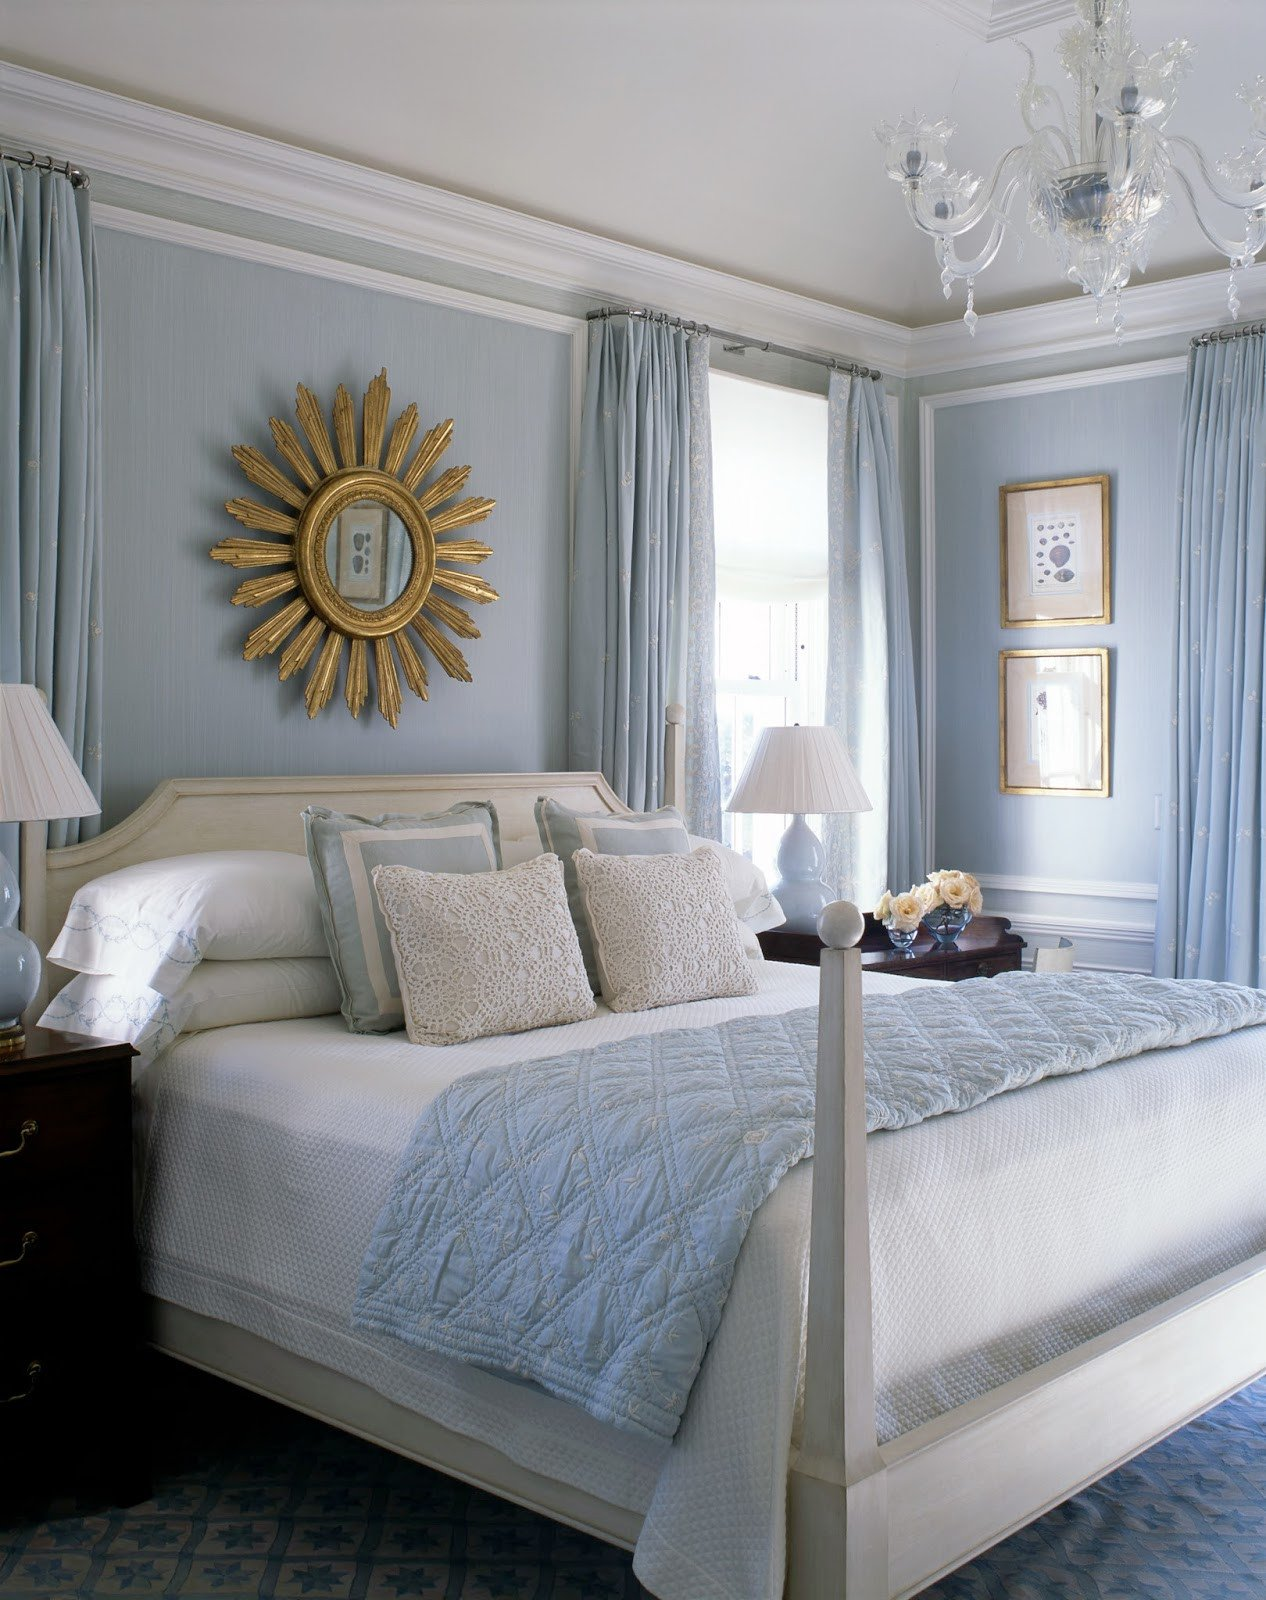 Blue and White Bedroom Decor Awesome A Blue and White Beach House by Phoebe and Jim Howard the Glam Pad